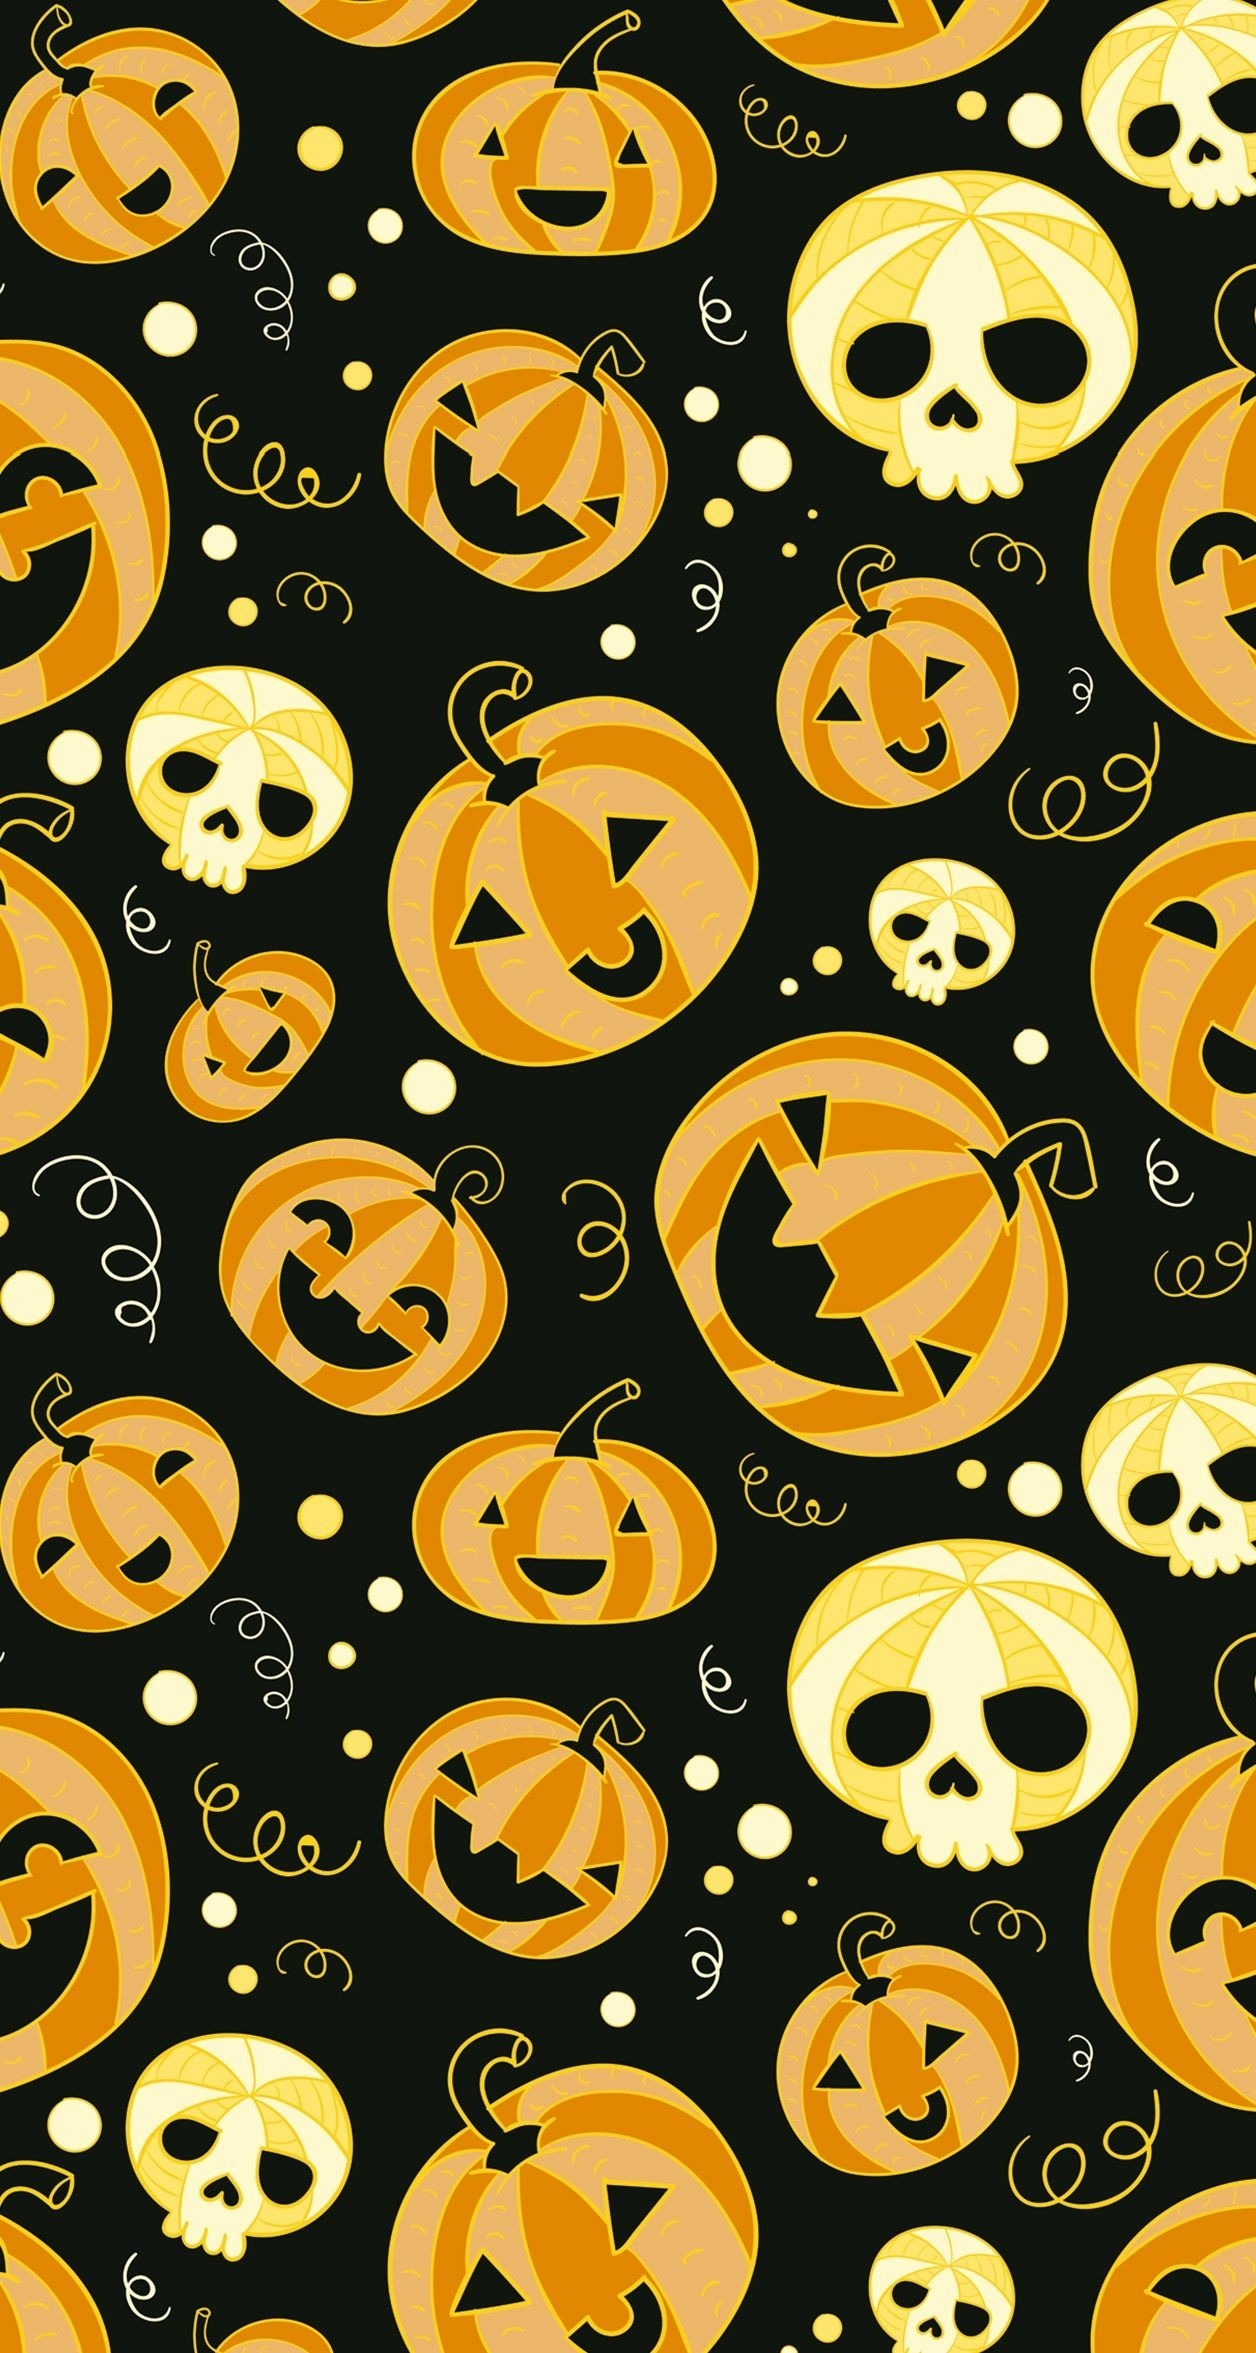 Halloween Iphone Wallpaper - Cute Halloween Phone Backgrounds , HD Wallpaper & Backgrounds